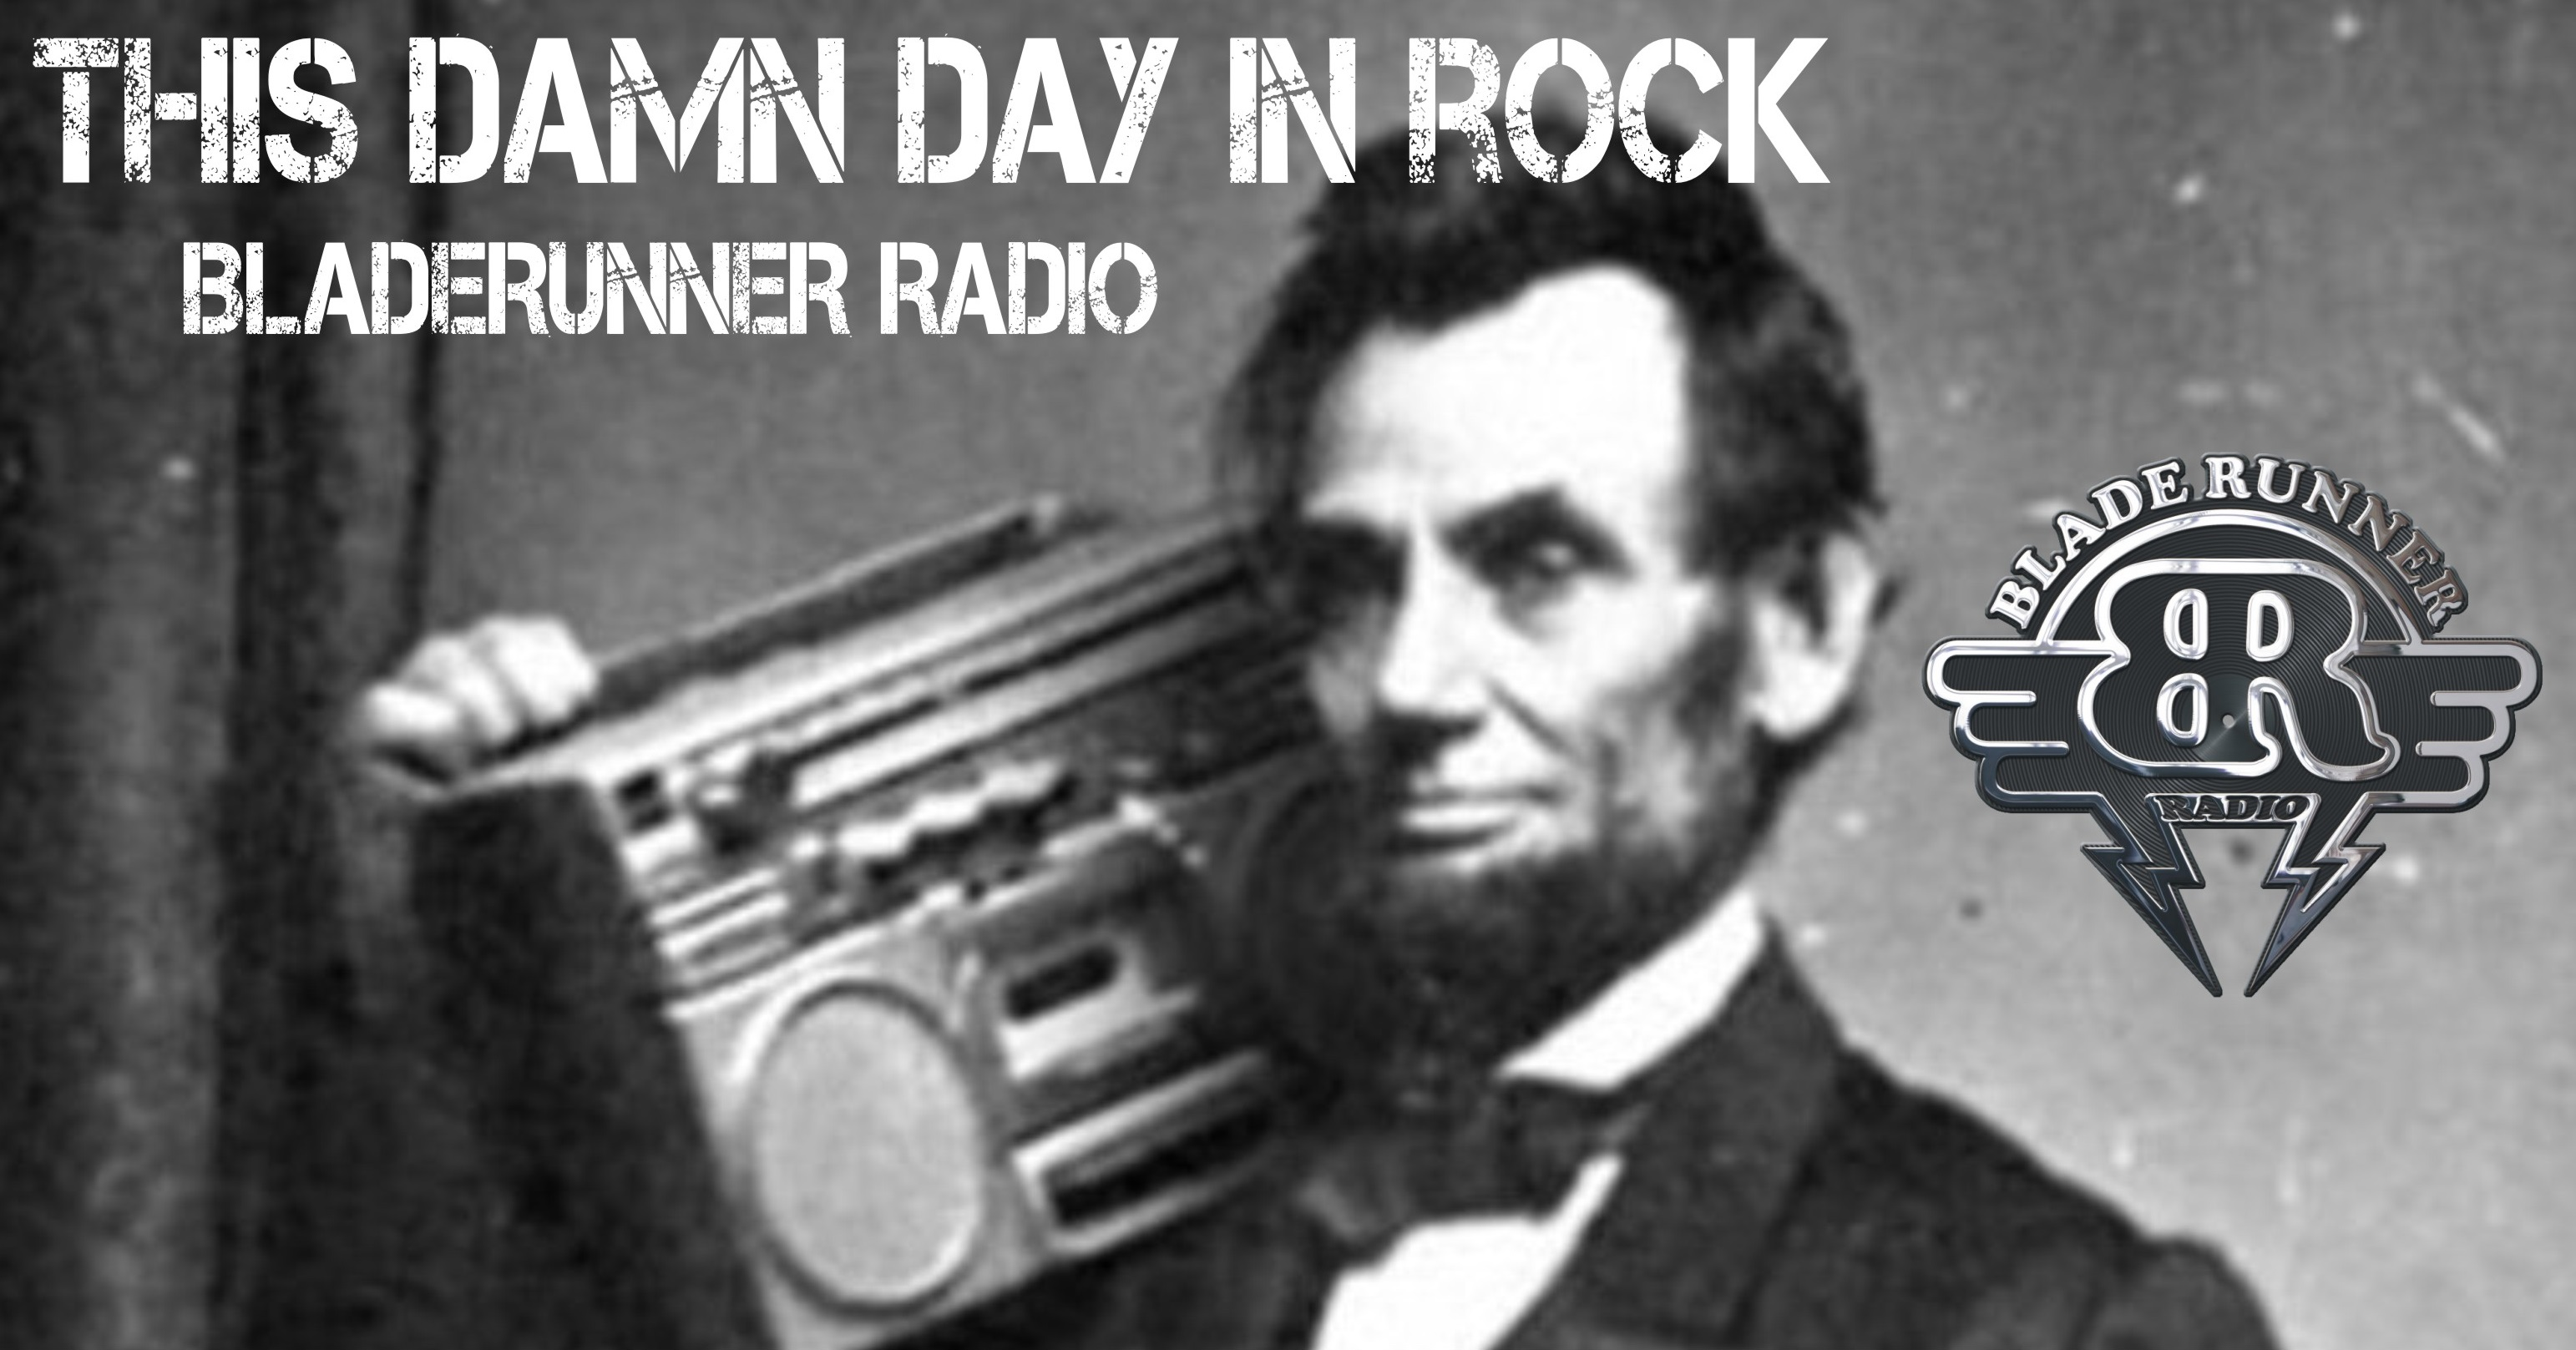 This Damn Day in Rock, Bladerunner Radio, Rock History, Abe Lincoln, Eddie trunk, Bladerunner Radio, KATT, Oklahoma City